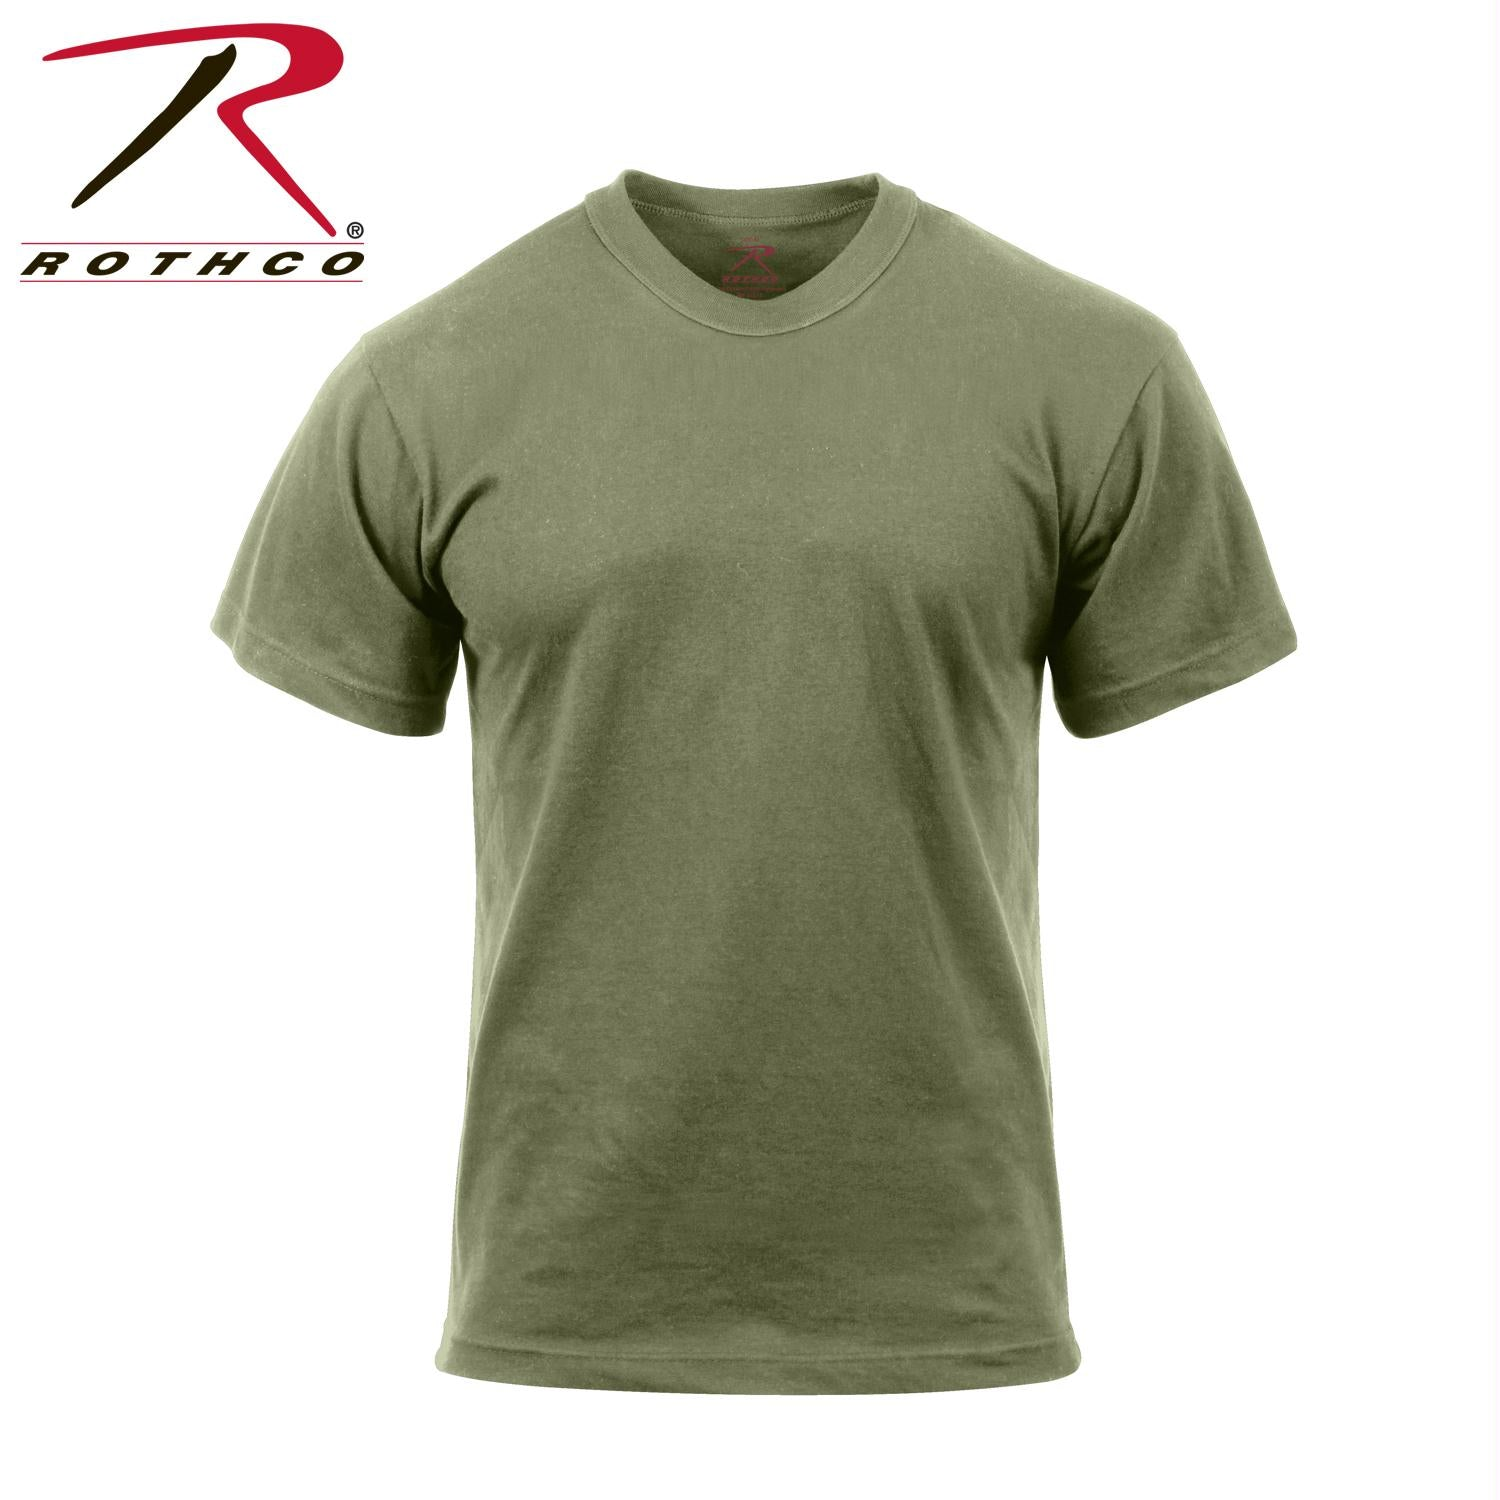 Rothco Moisture Wicking T-Shirts - Foliage Green / S